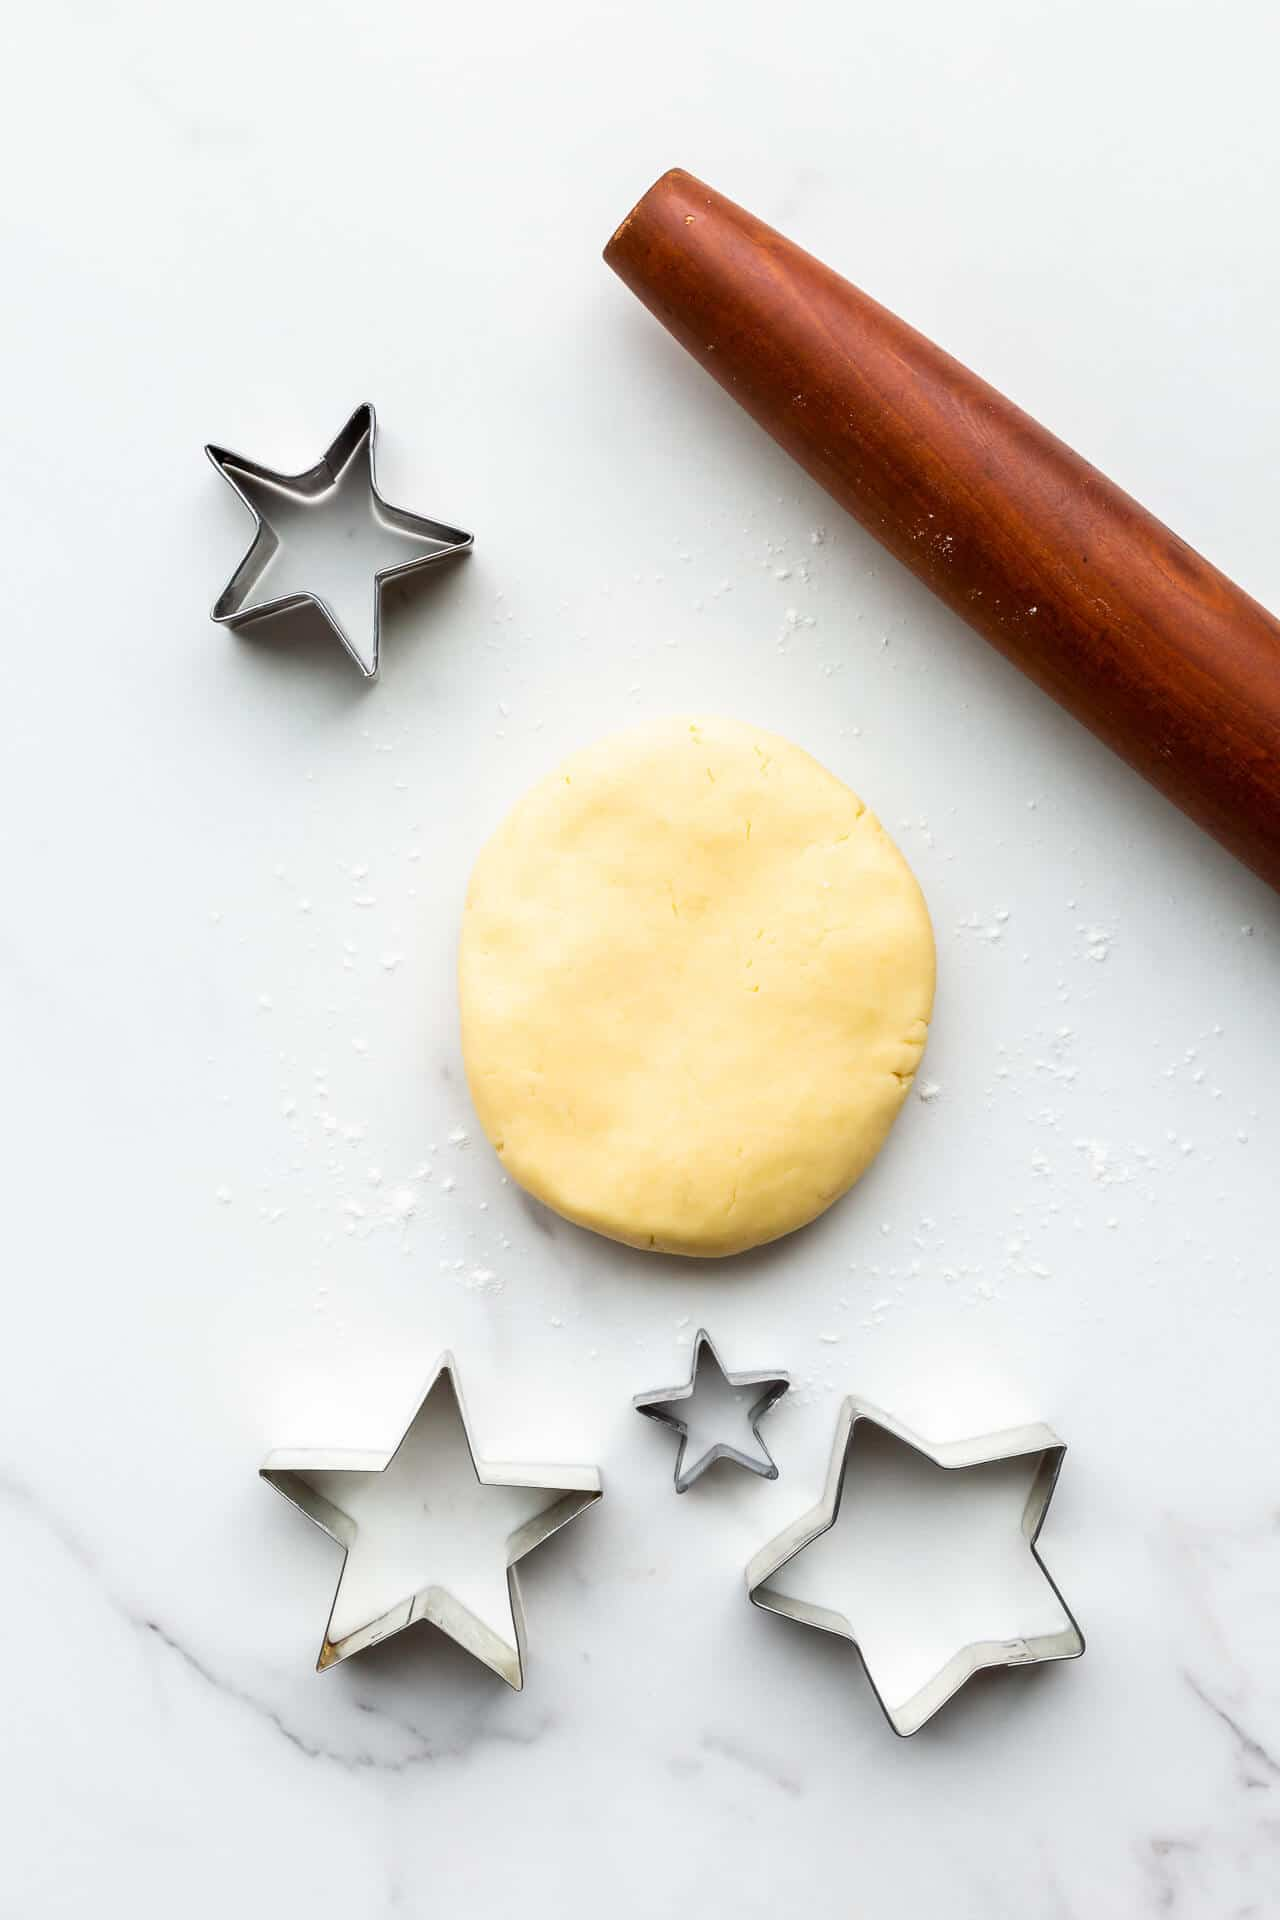 Shortbread dough with rolling pin and cookie cutters ready to be rolled and cut to bake them.